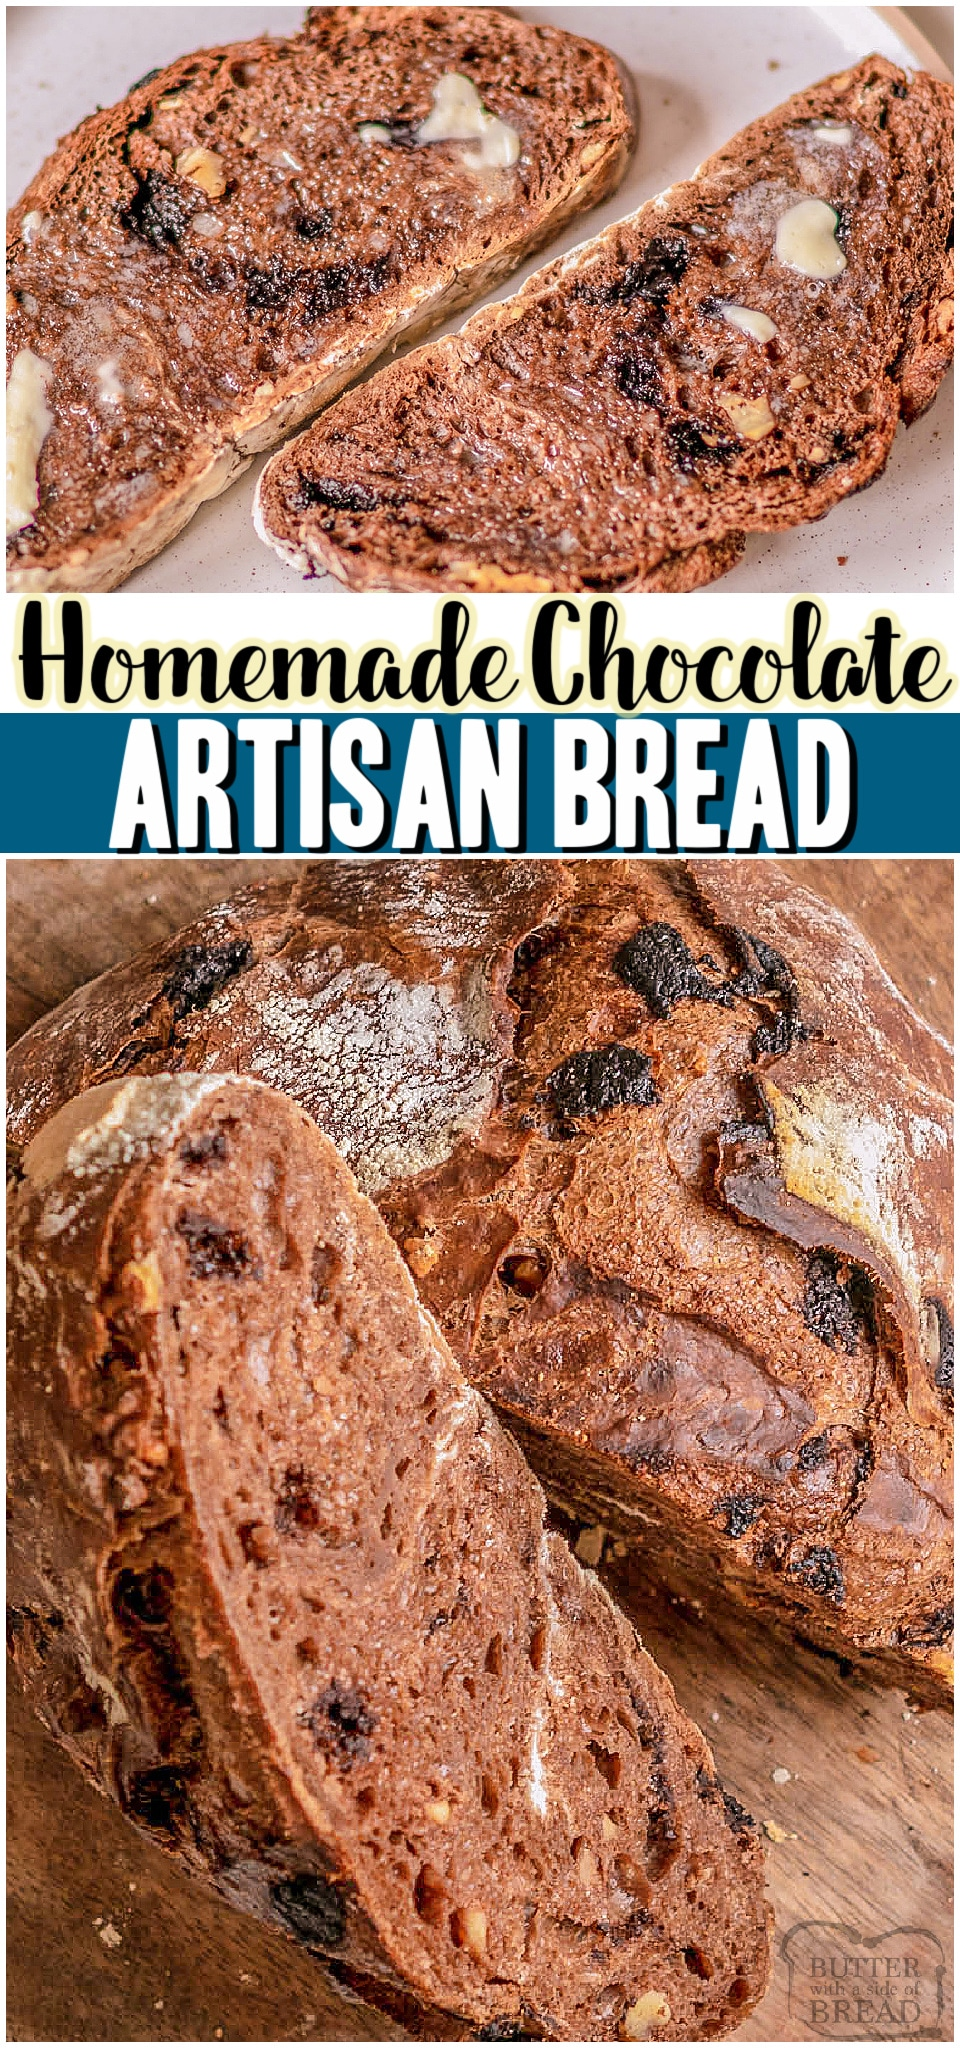 No-Knead Chocolate Artisan Bread is an easy to make crusty bread recipe that packs chocolate flavor into every chewy bite. With cocoa powder and chopped dark chocolate, this easy artisan bread is a delicious treat! #bread #artisan #noknead #chocolate #baking #easyrecipe from BUTTER WITH A SIDE OF BREAD